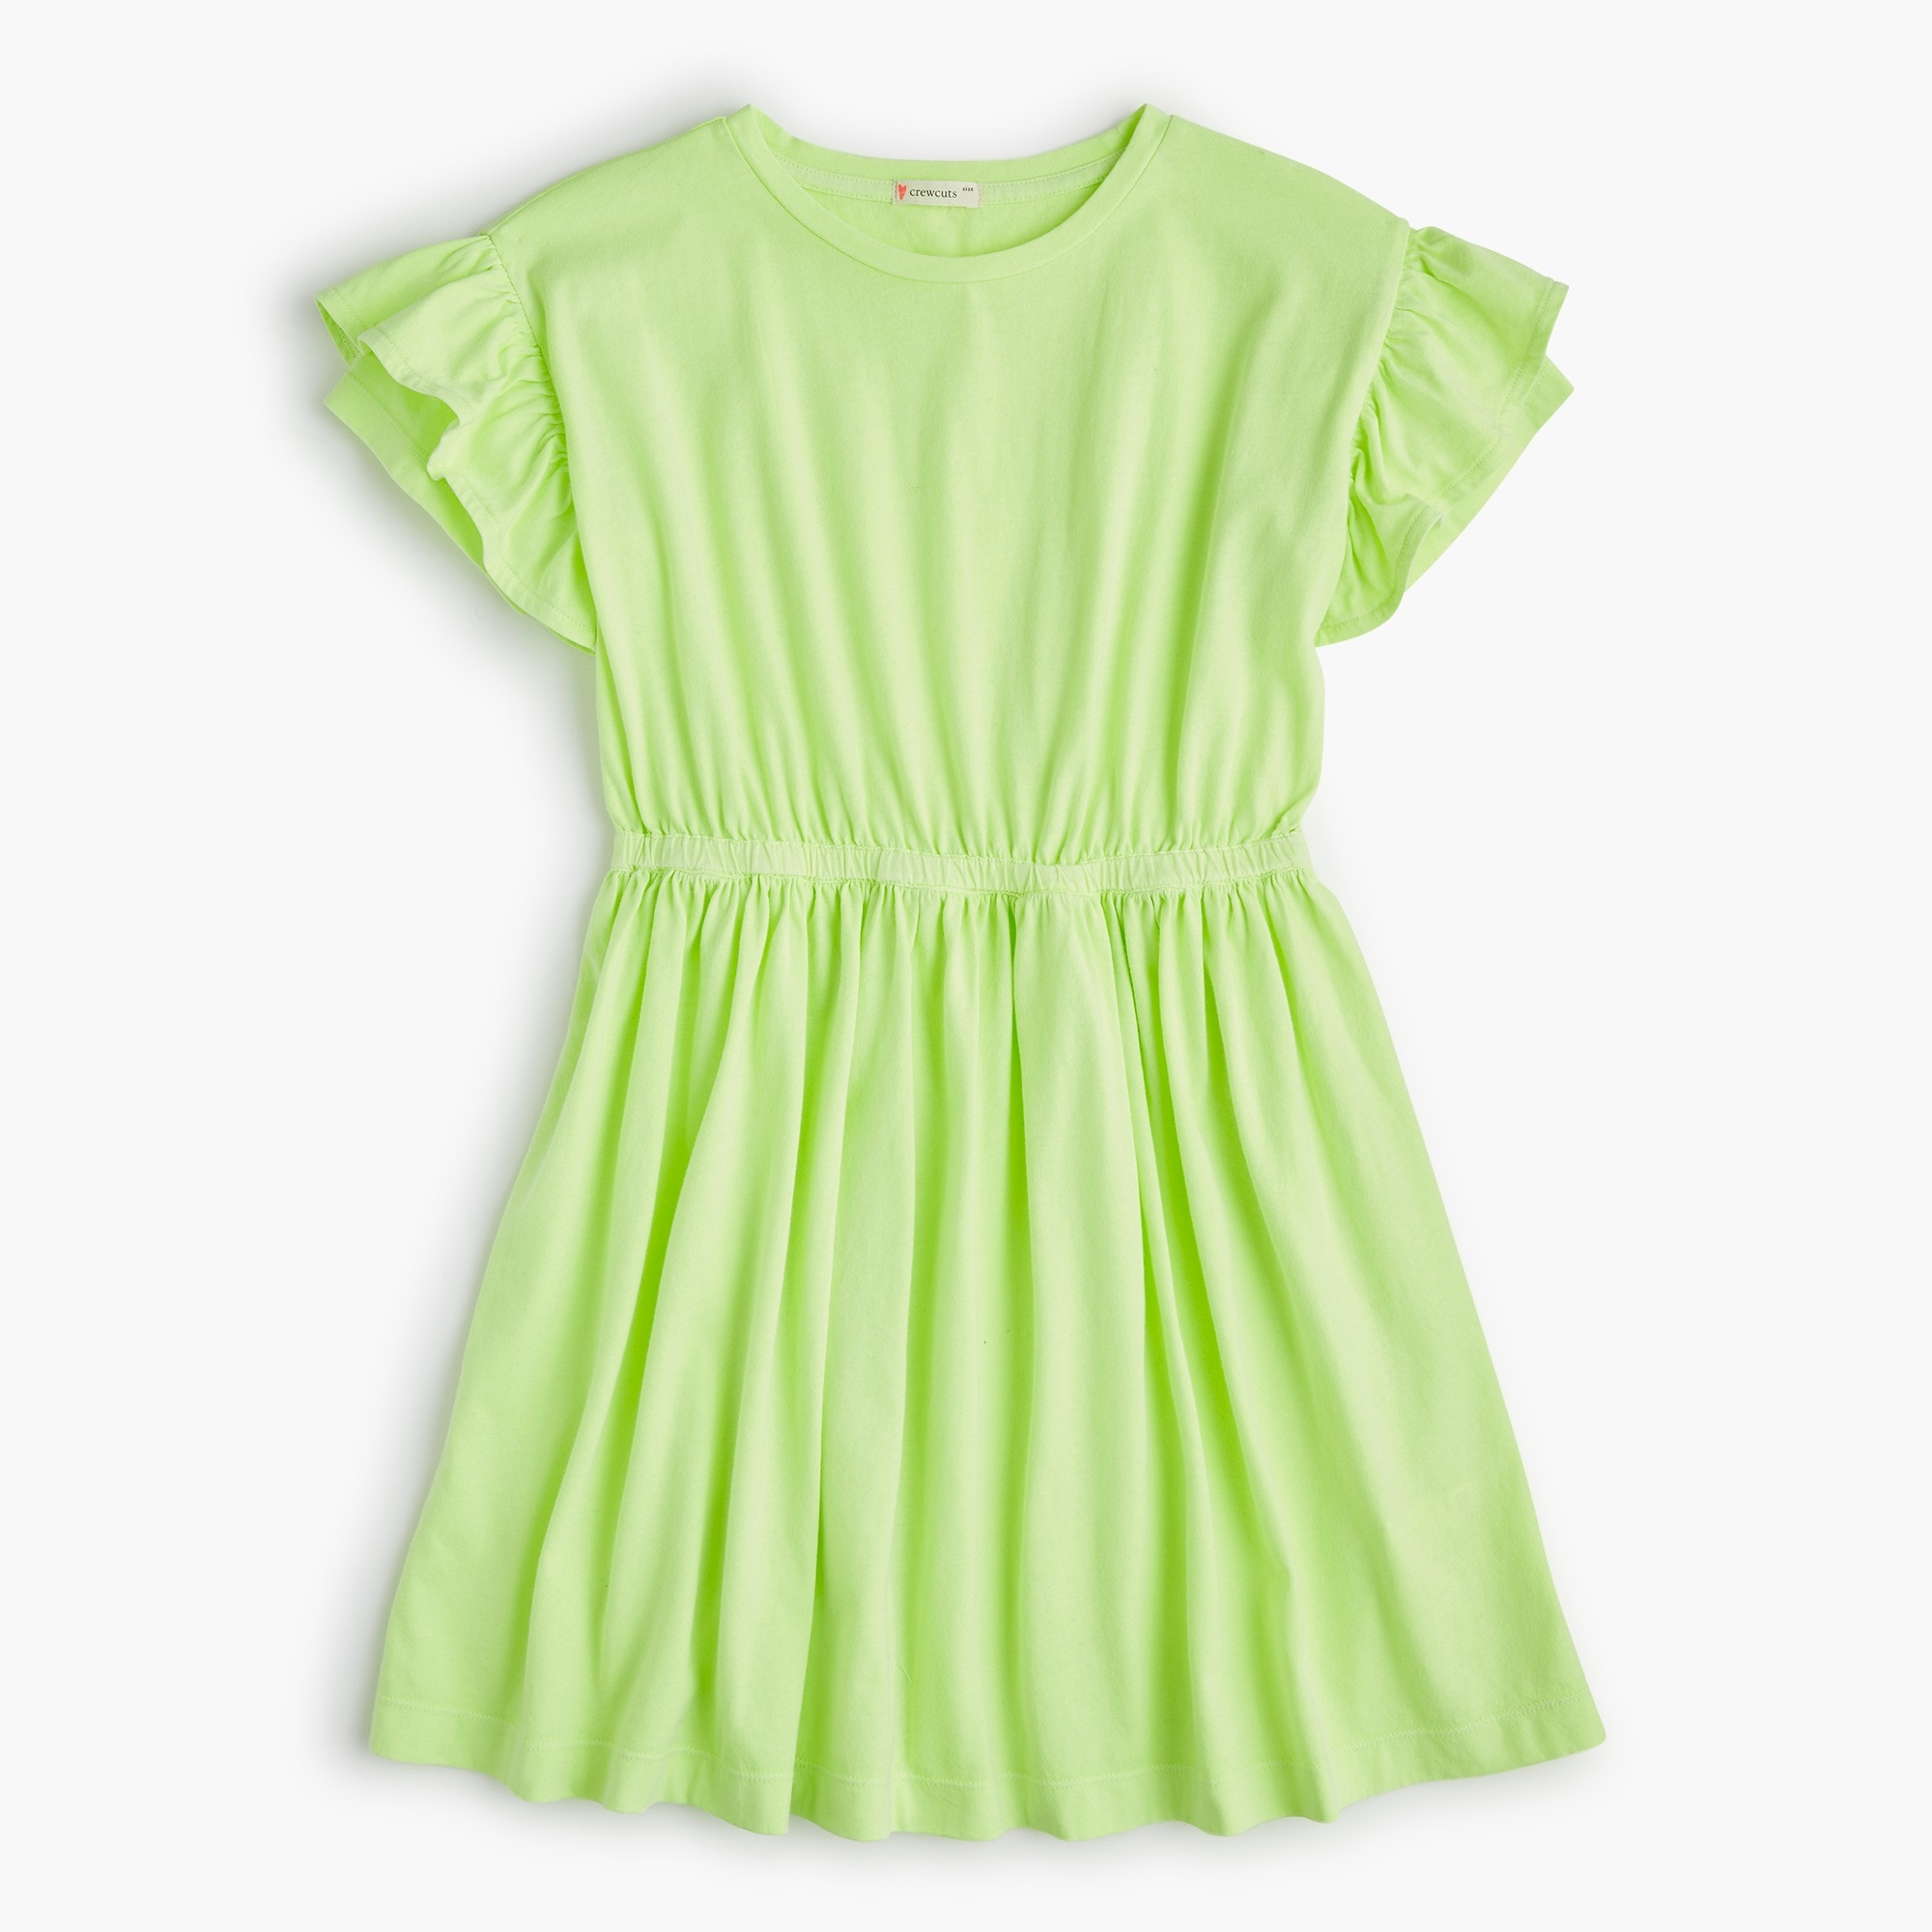 Girls' flutter-sleeve dress girl new arrivals c